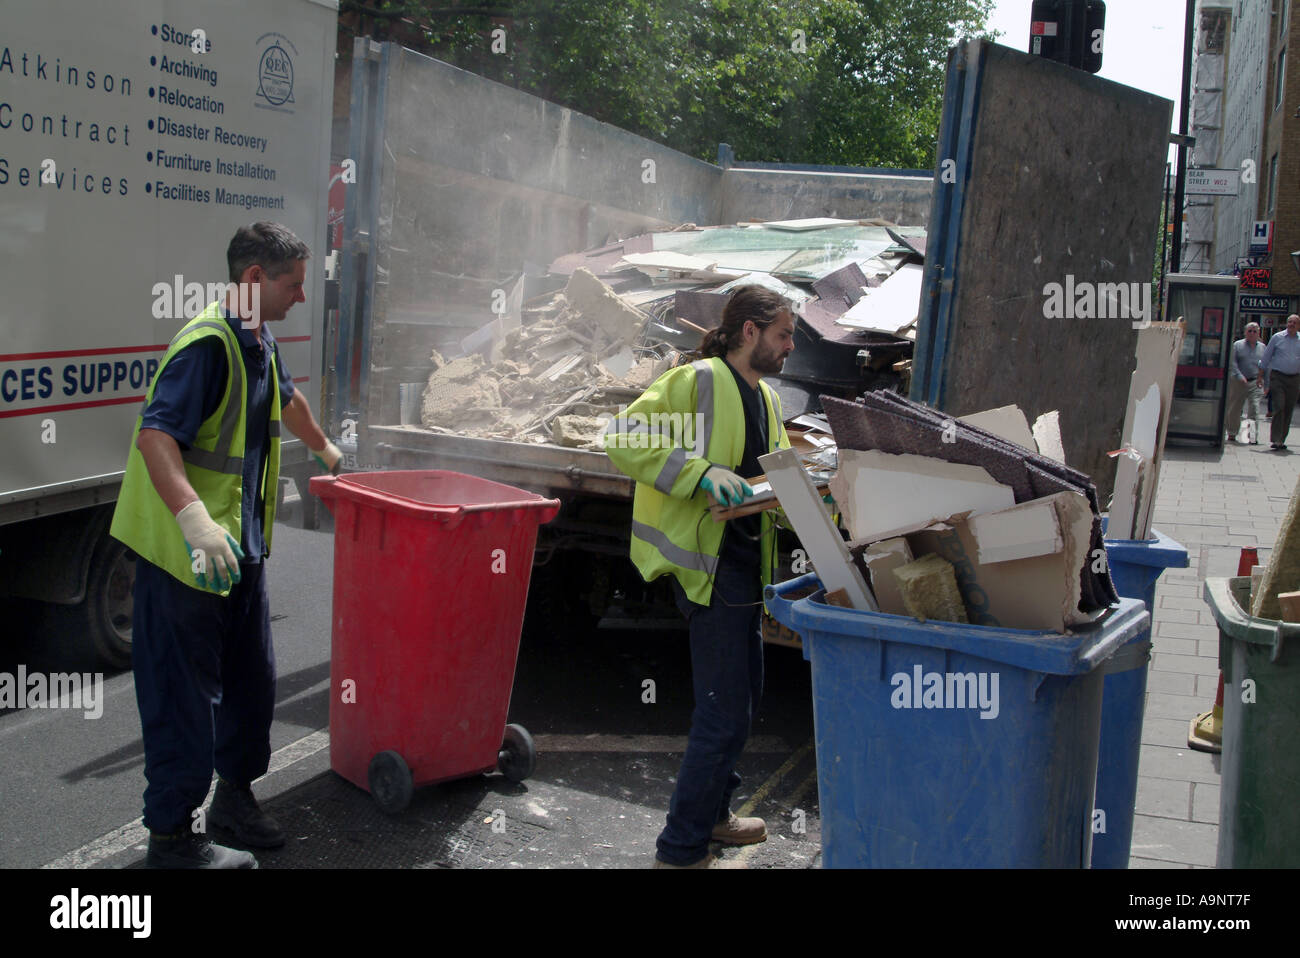 TWO COUNCIL WORKERS COLLECTING THE RUBBLE IN THE CITY LONDON 2005 - Stock Image